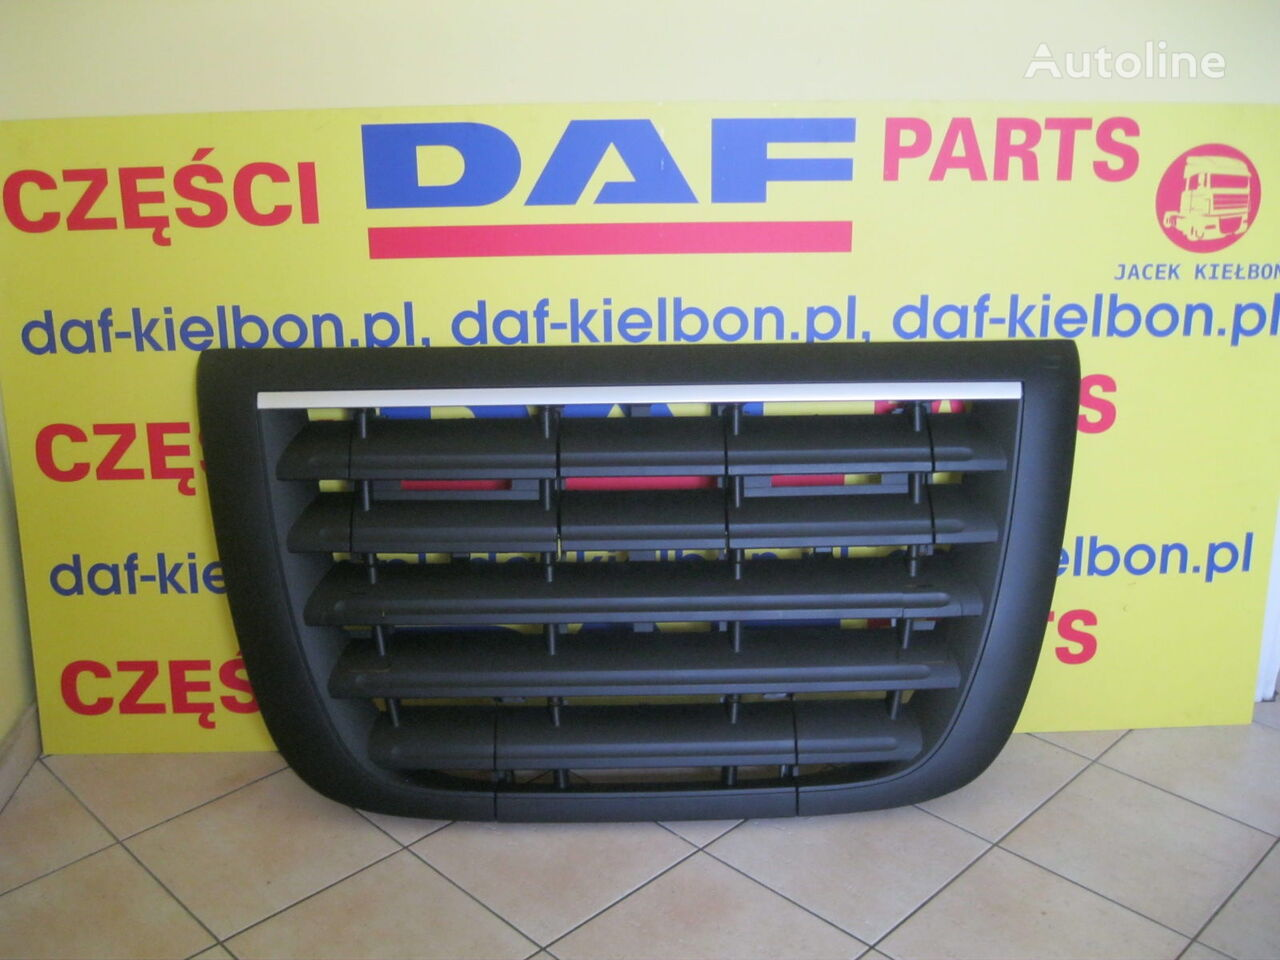 new DAF GRILL hood for DAF XF 105 tractor unit